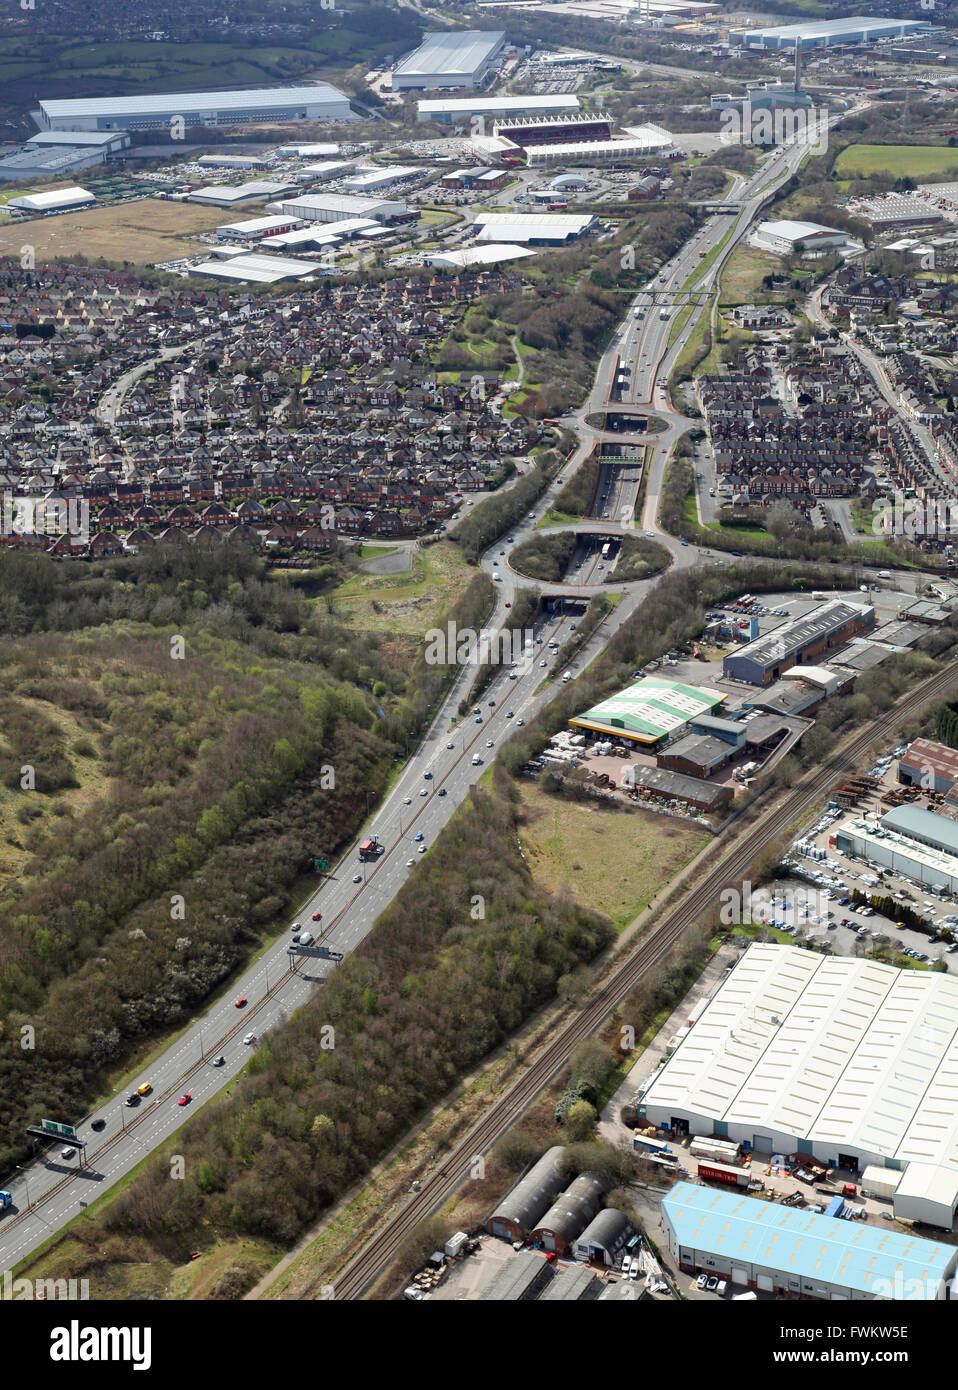 aerial view of the A50 trunk road as it passes through Stoke-on-Trent, Staffordshire, UK - Stock Image